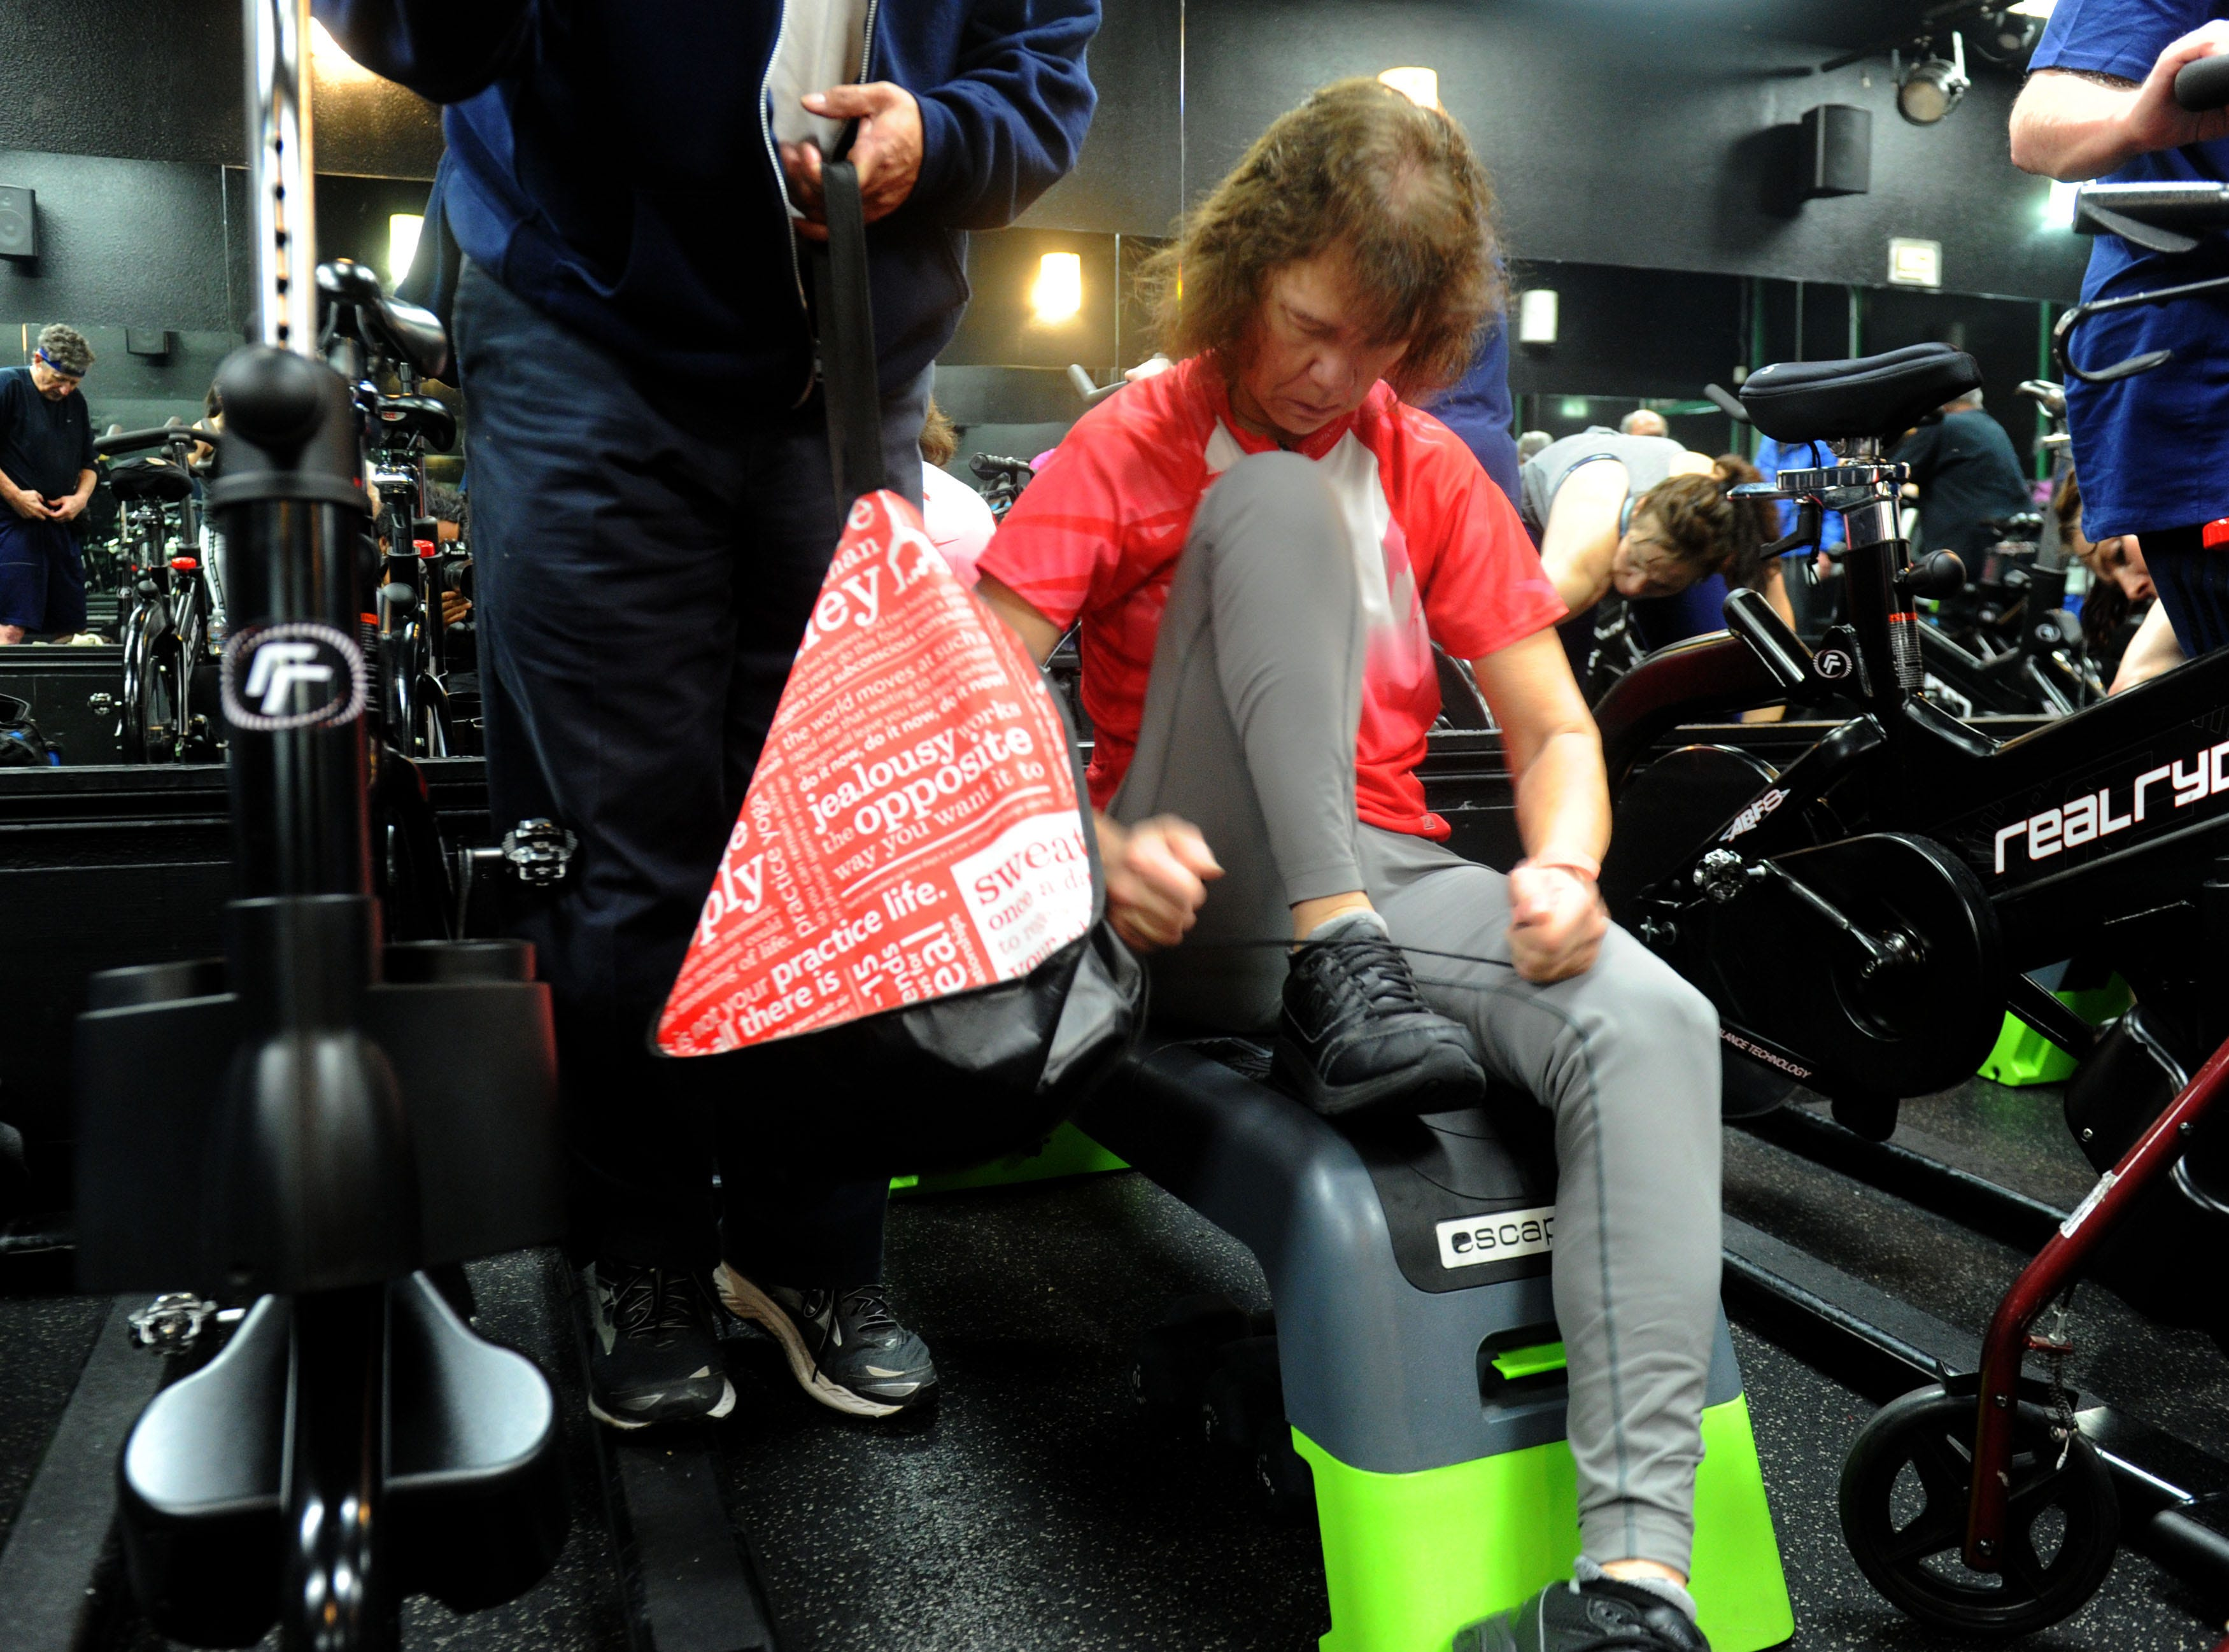 Debbie Jew puts on her tennis shoes after finishing a 30-minute spin class at Agoura Fitness in  Agoura Hills. Jew, of Moorpark, was diagnosed 13 years ago with Parkinson's disease when she was 45. She uses exercise to try to control the disease's progress.